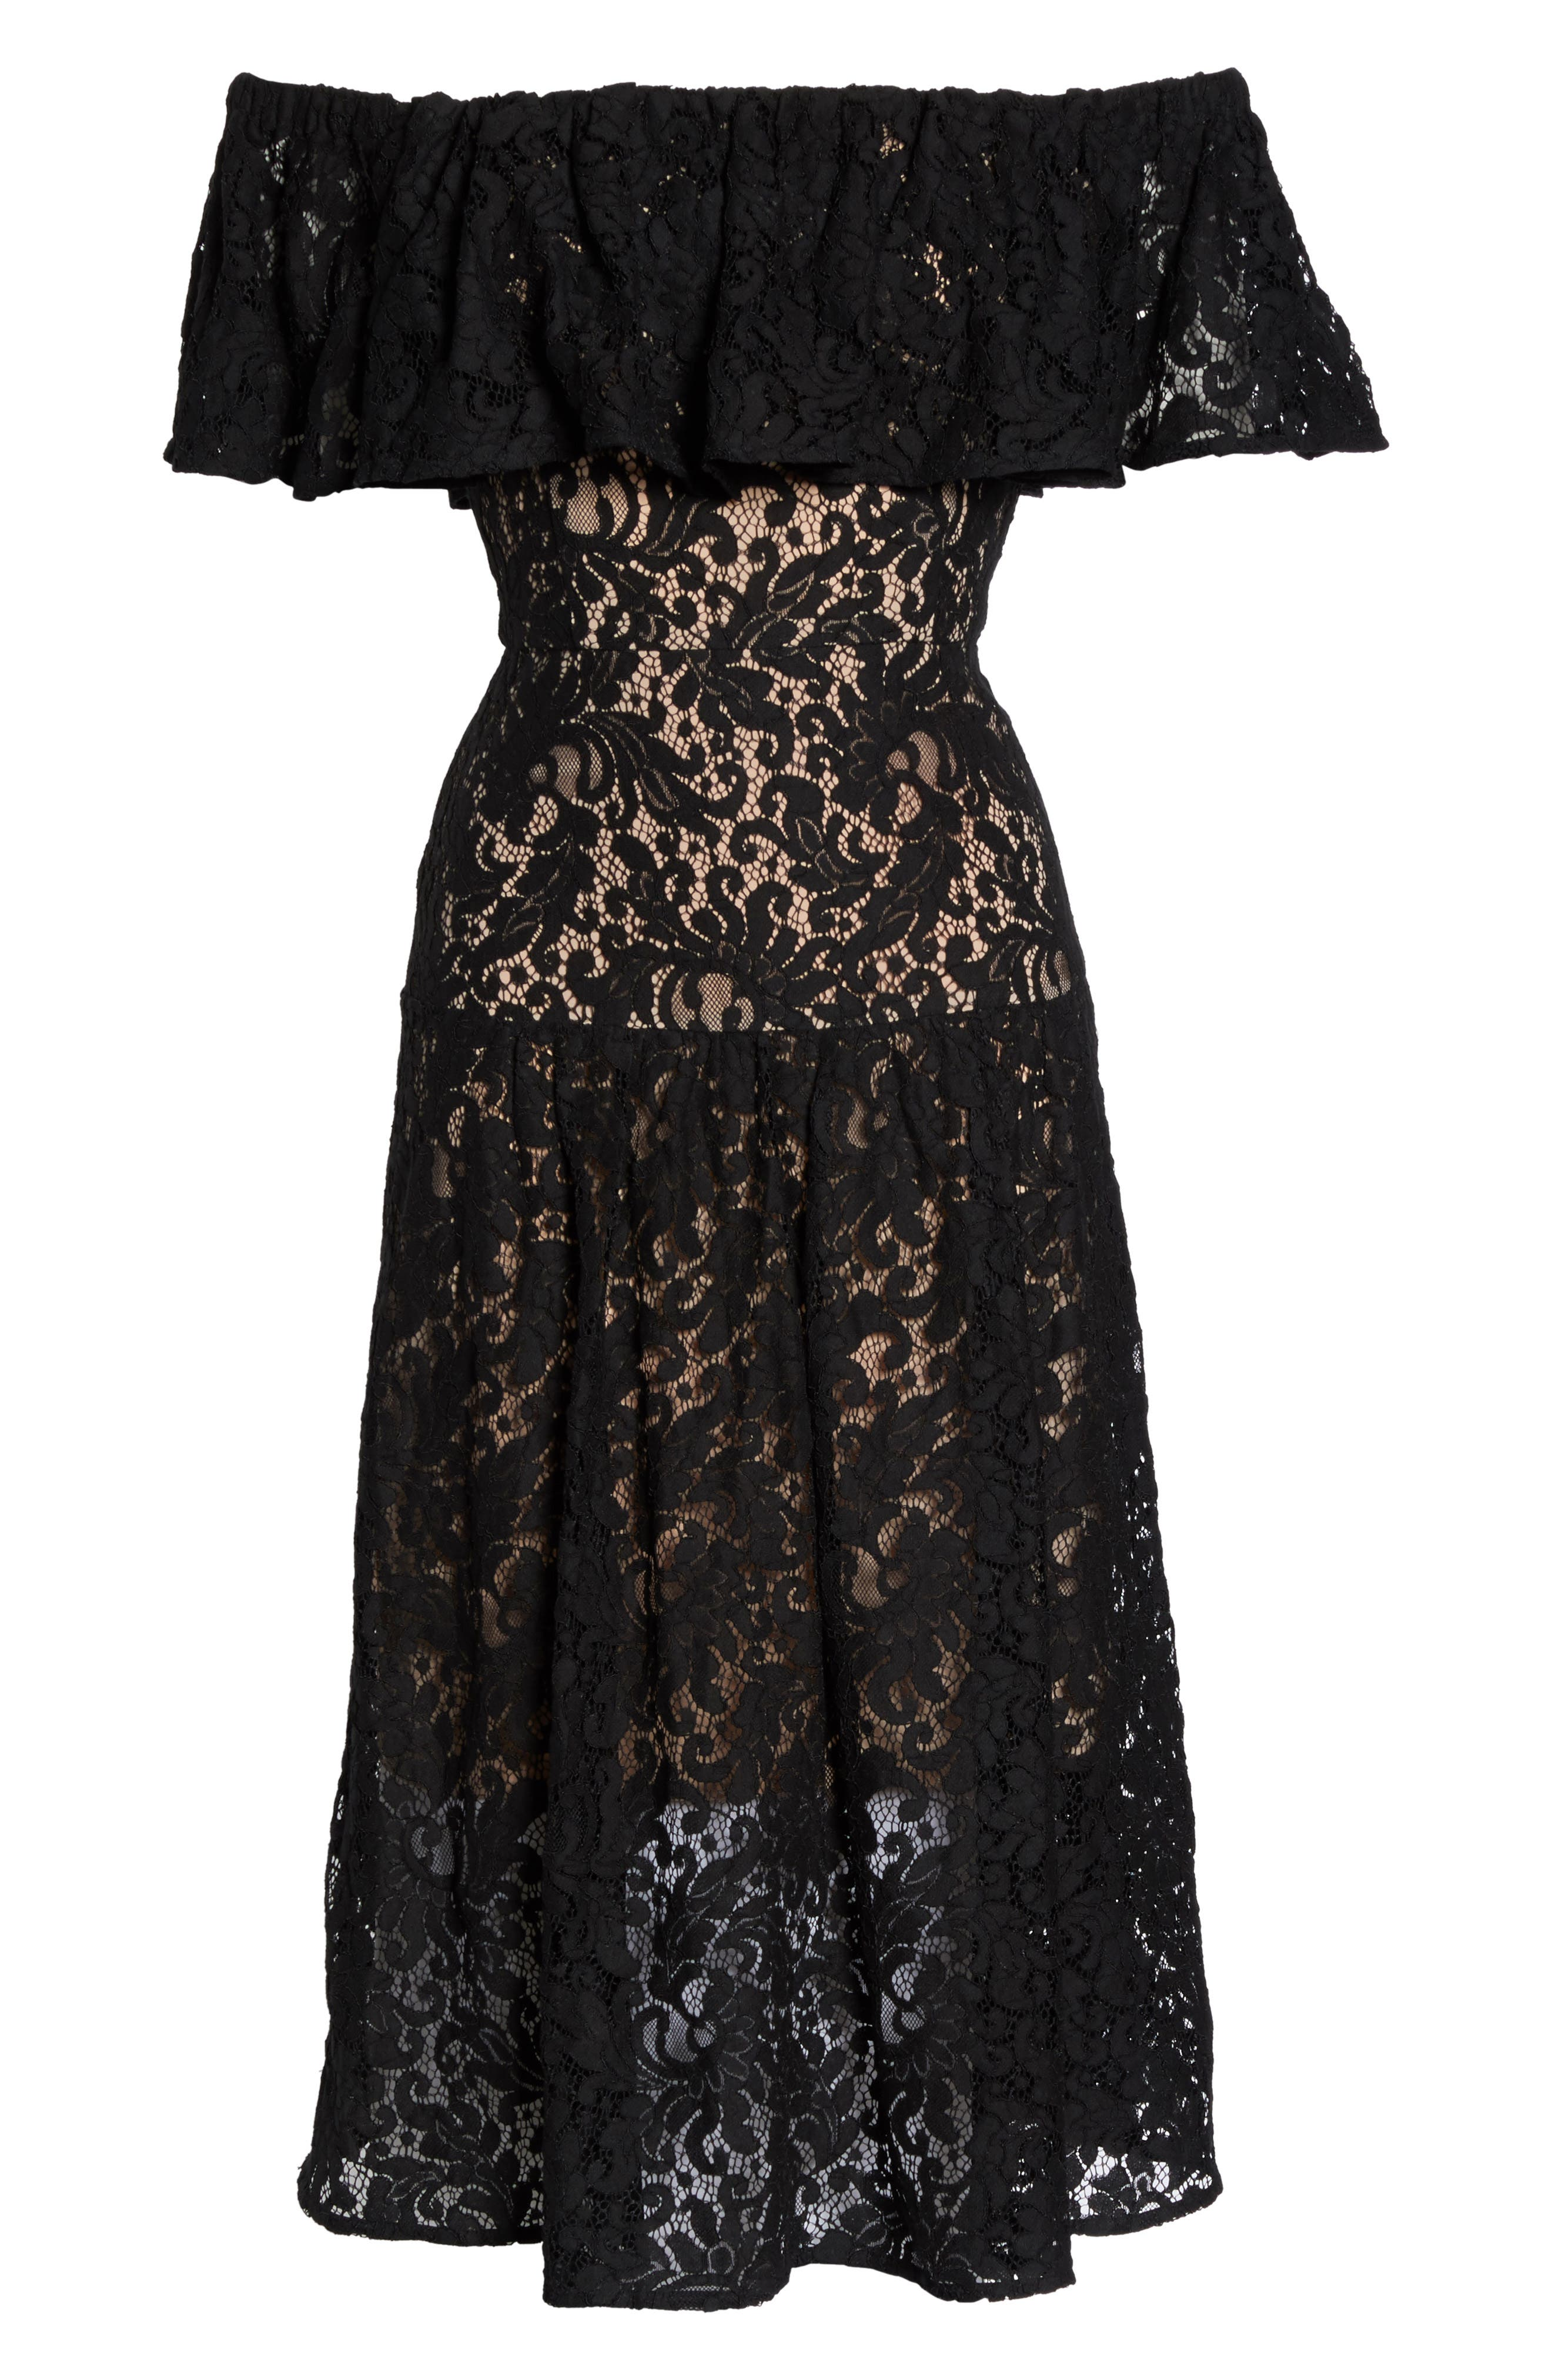 Sunday Silence Lace Off the Shoulder Dress,                             Alternate thumbnail 6, color,                             001